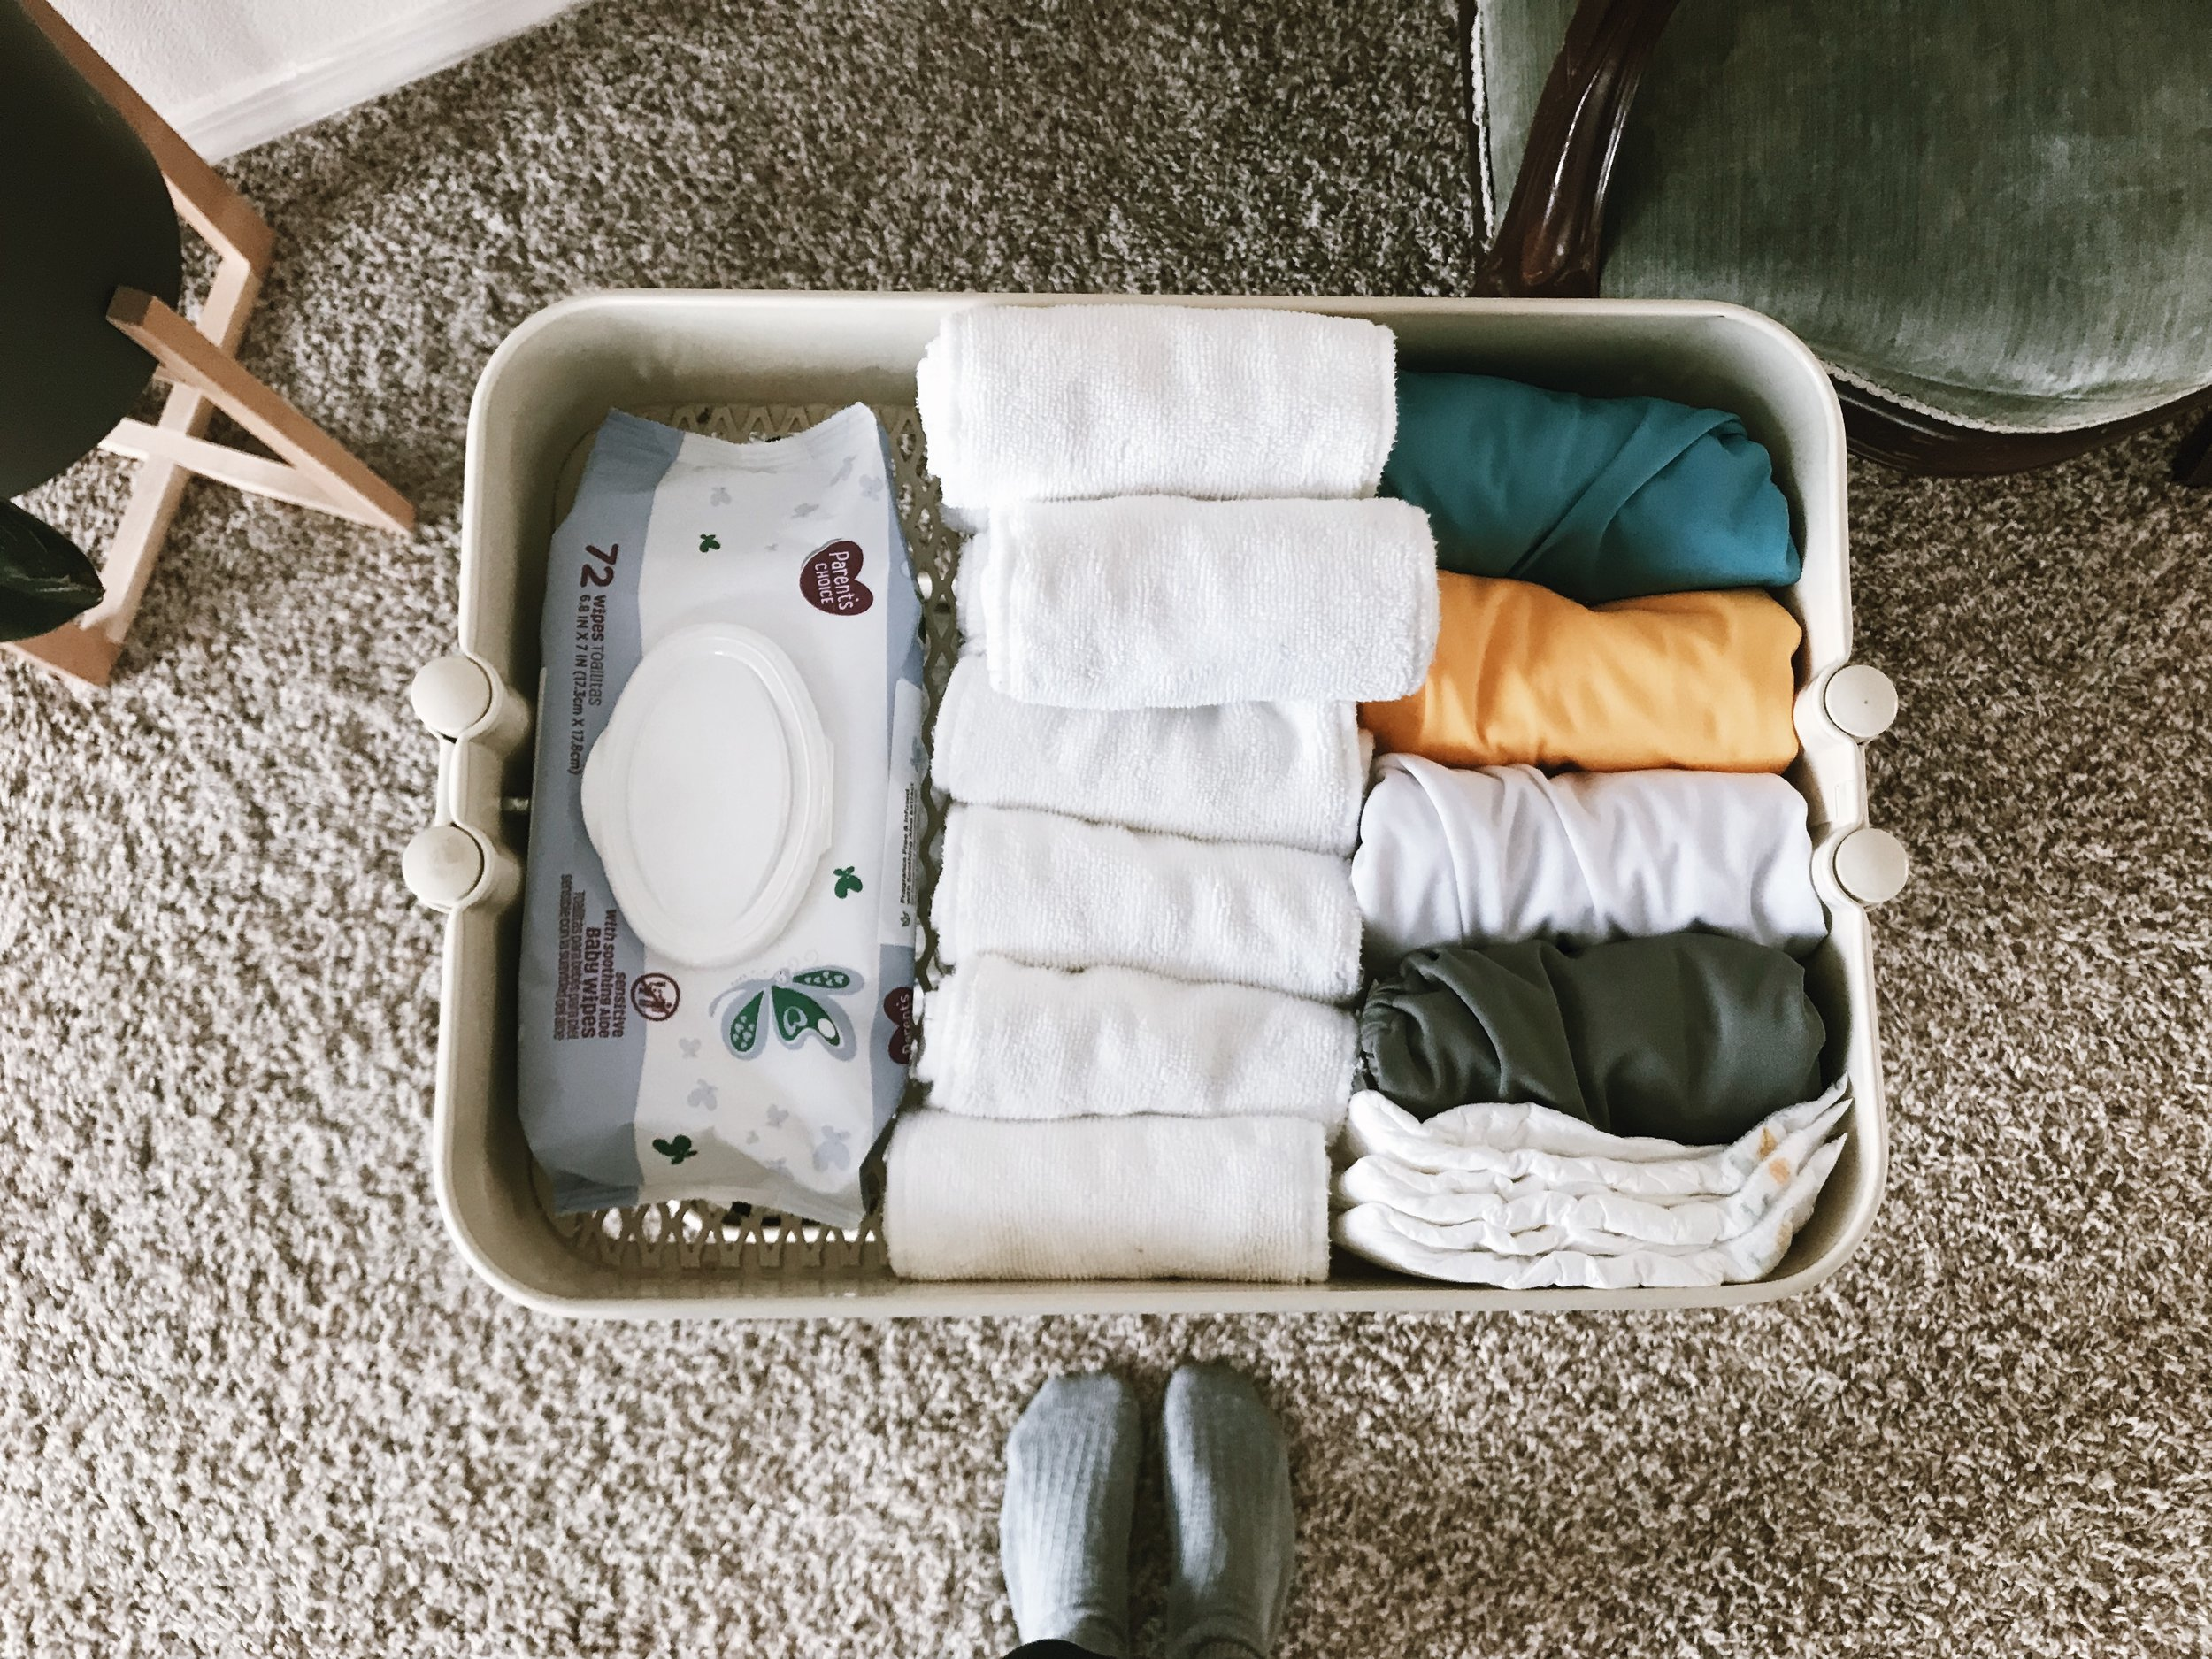 HOME IMPROVEMENT: THE NEWBORN CART - This Wild Home